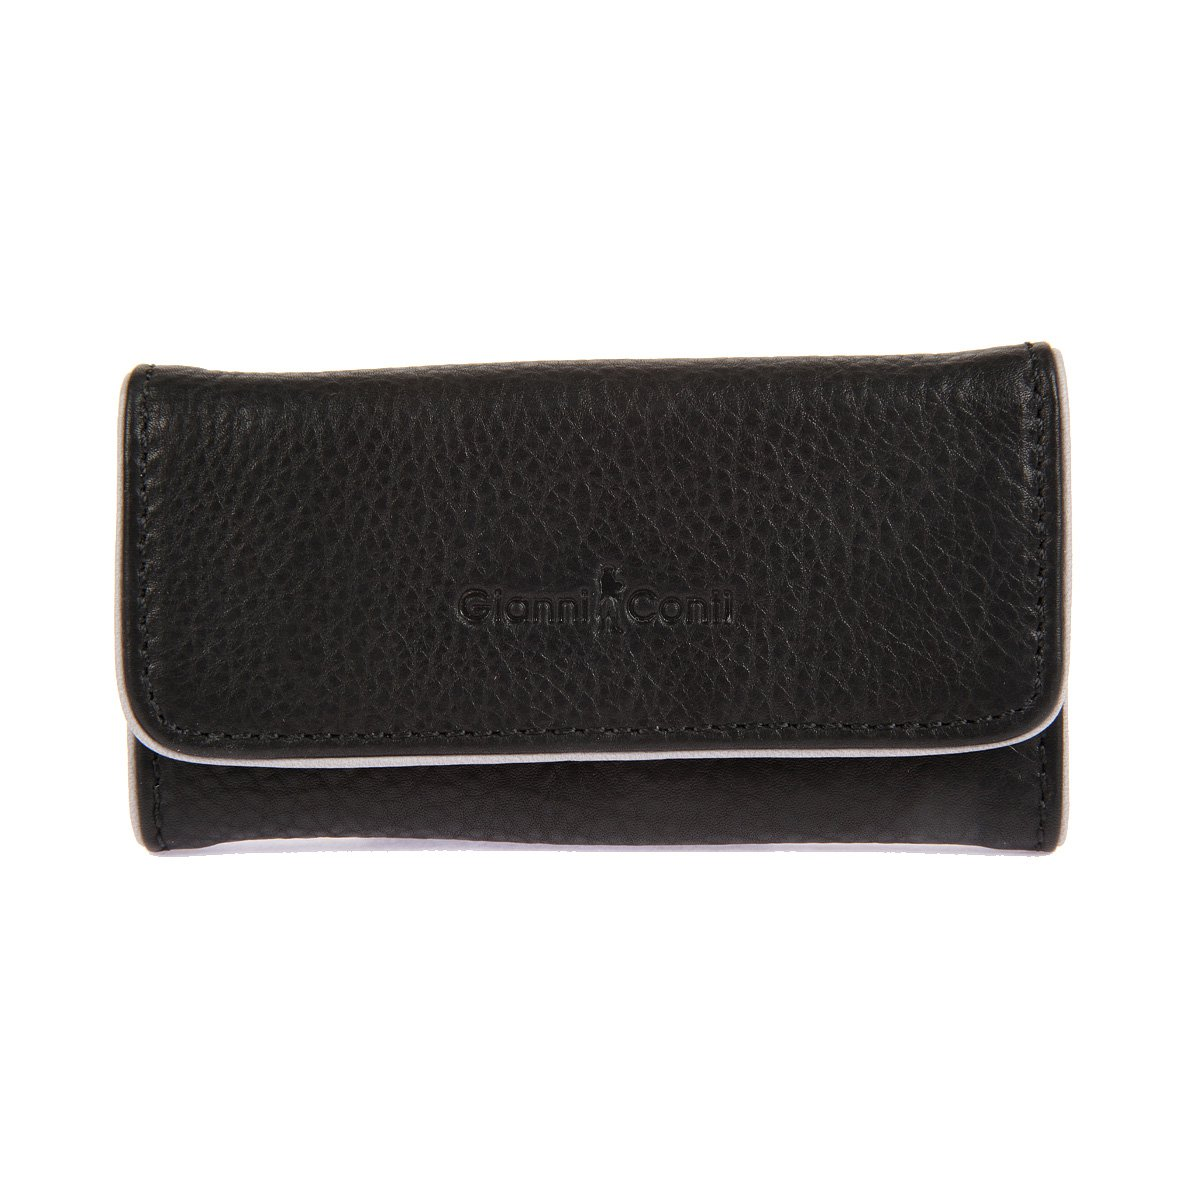 Ключница Gianni Conti 1759069 black grey